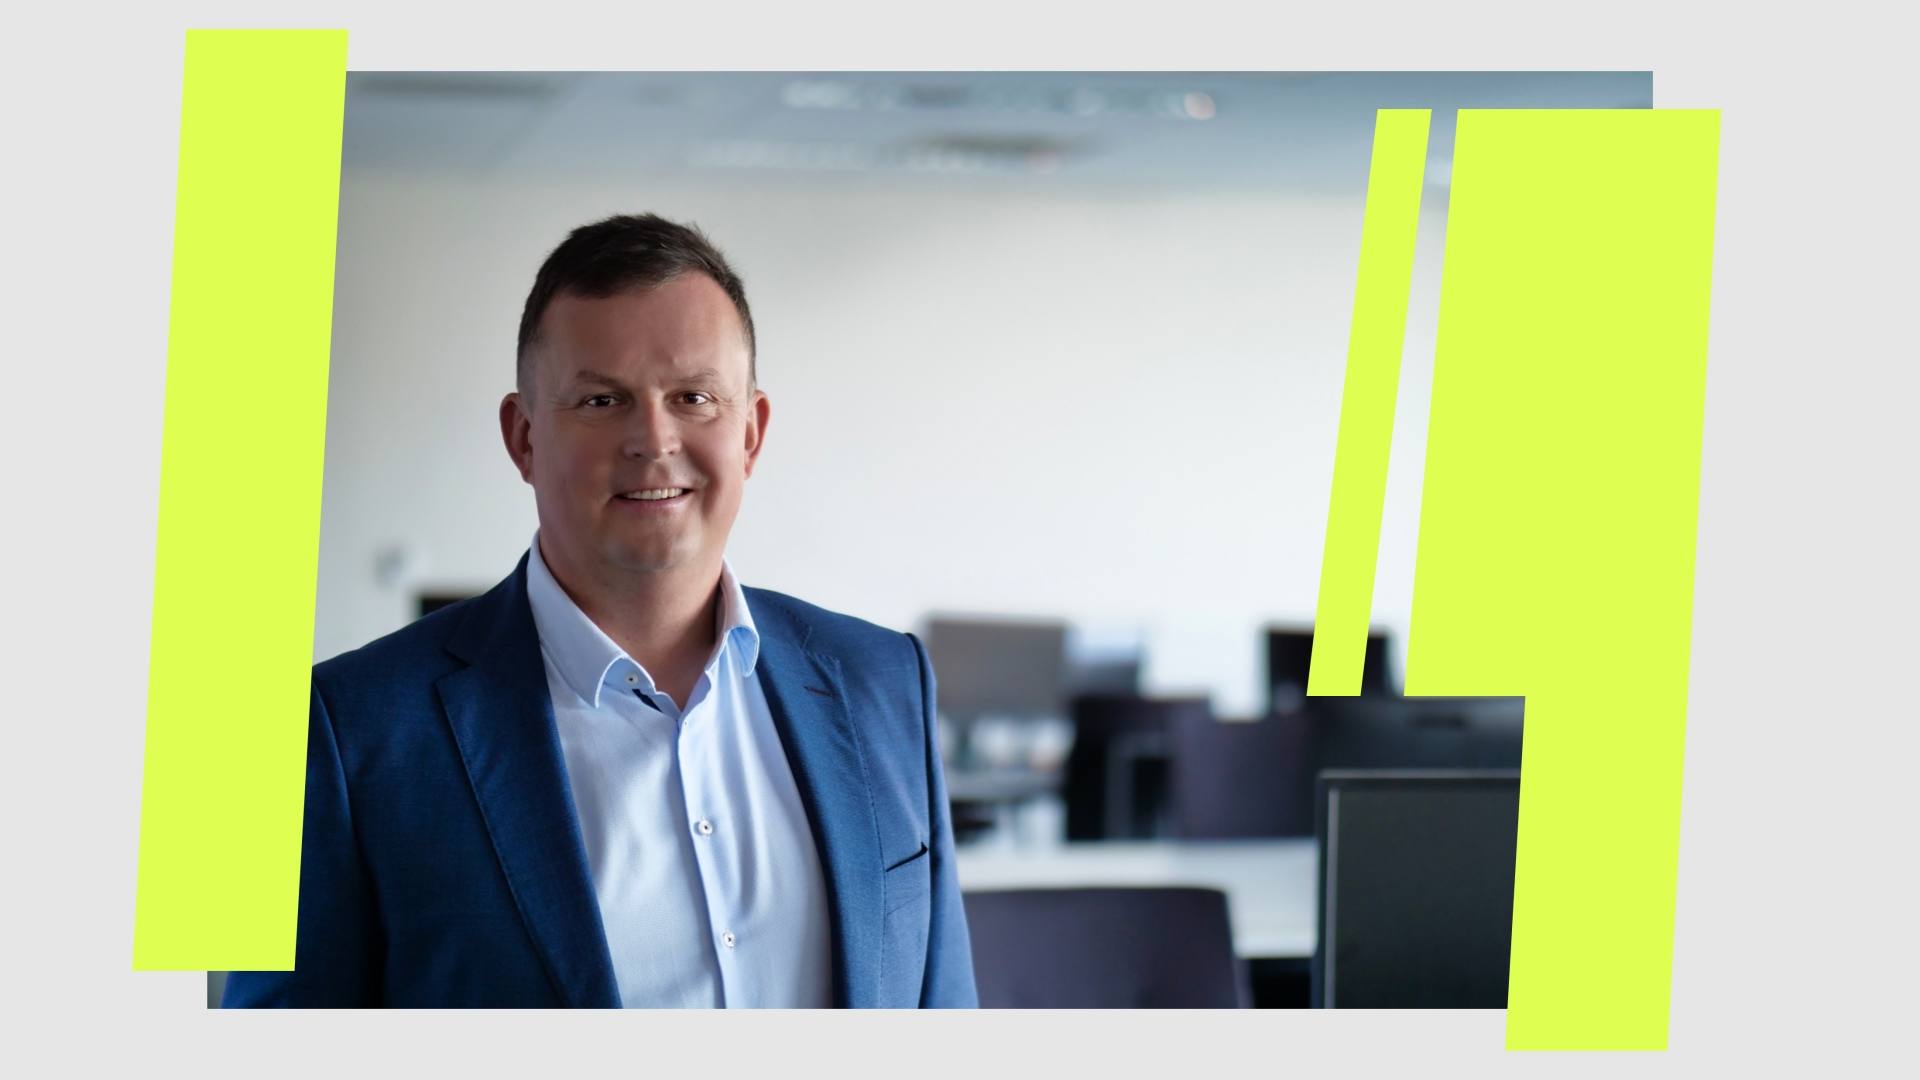 Tomasz Mordel joined the board of The Workin Group